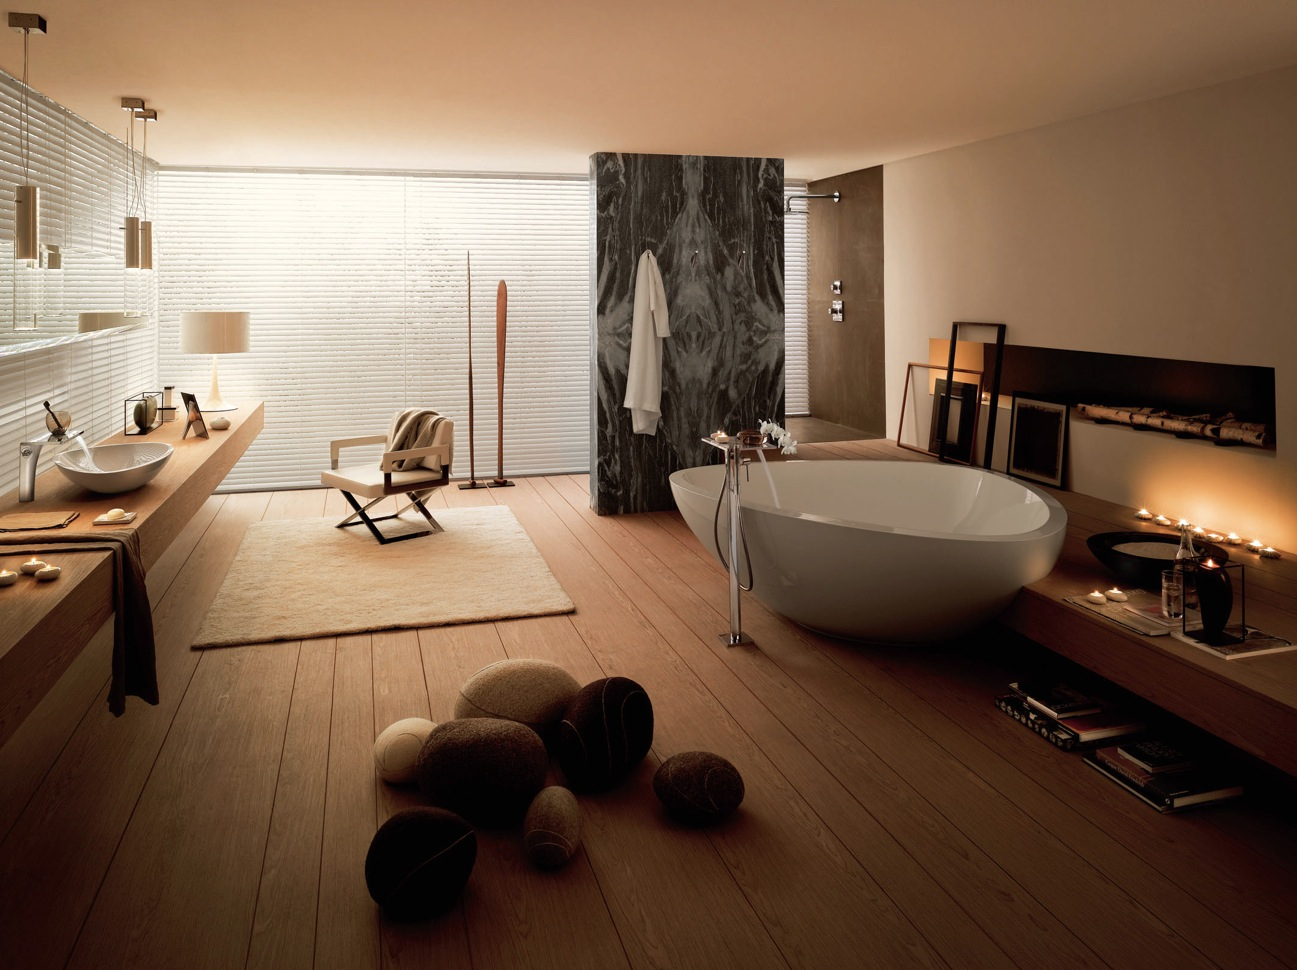 Bathrooms by rockstar designers jean marie massaud contemporary